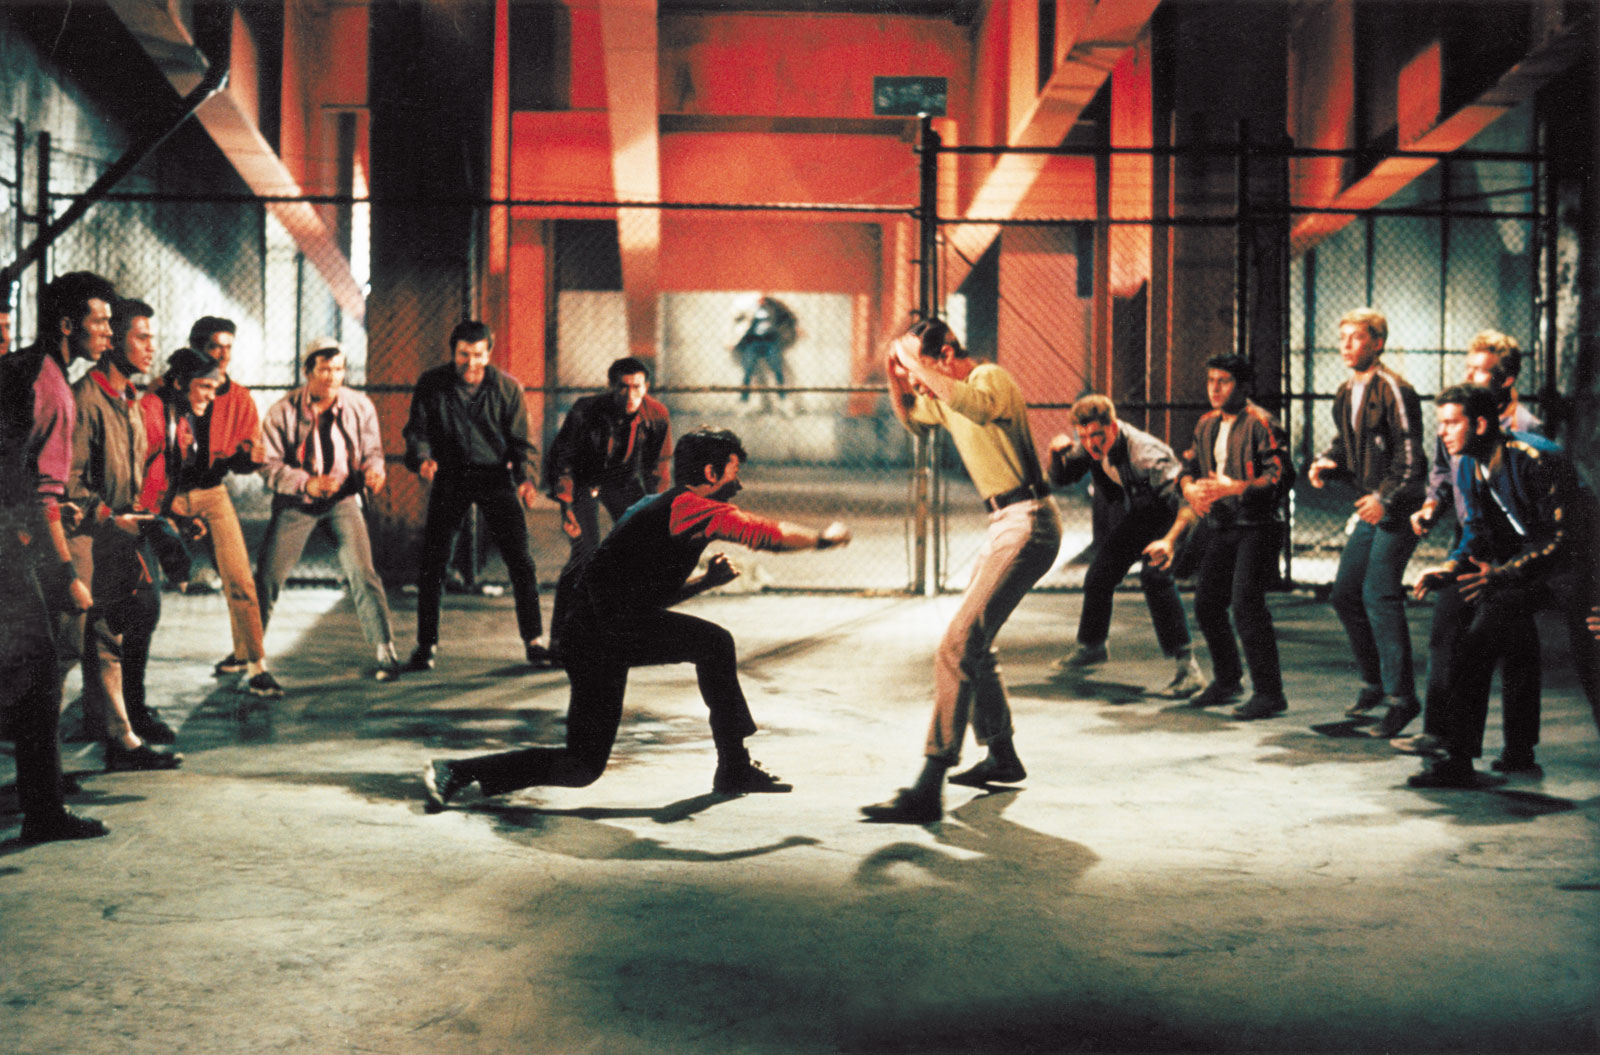 The Rumble from the 1961 film. Courtesy of United Artists.